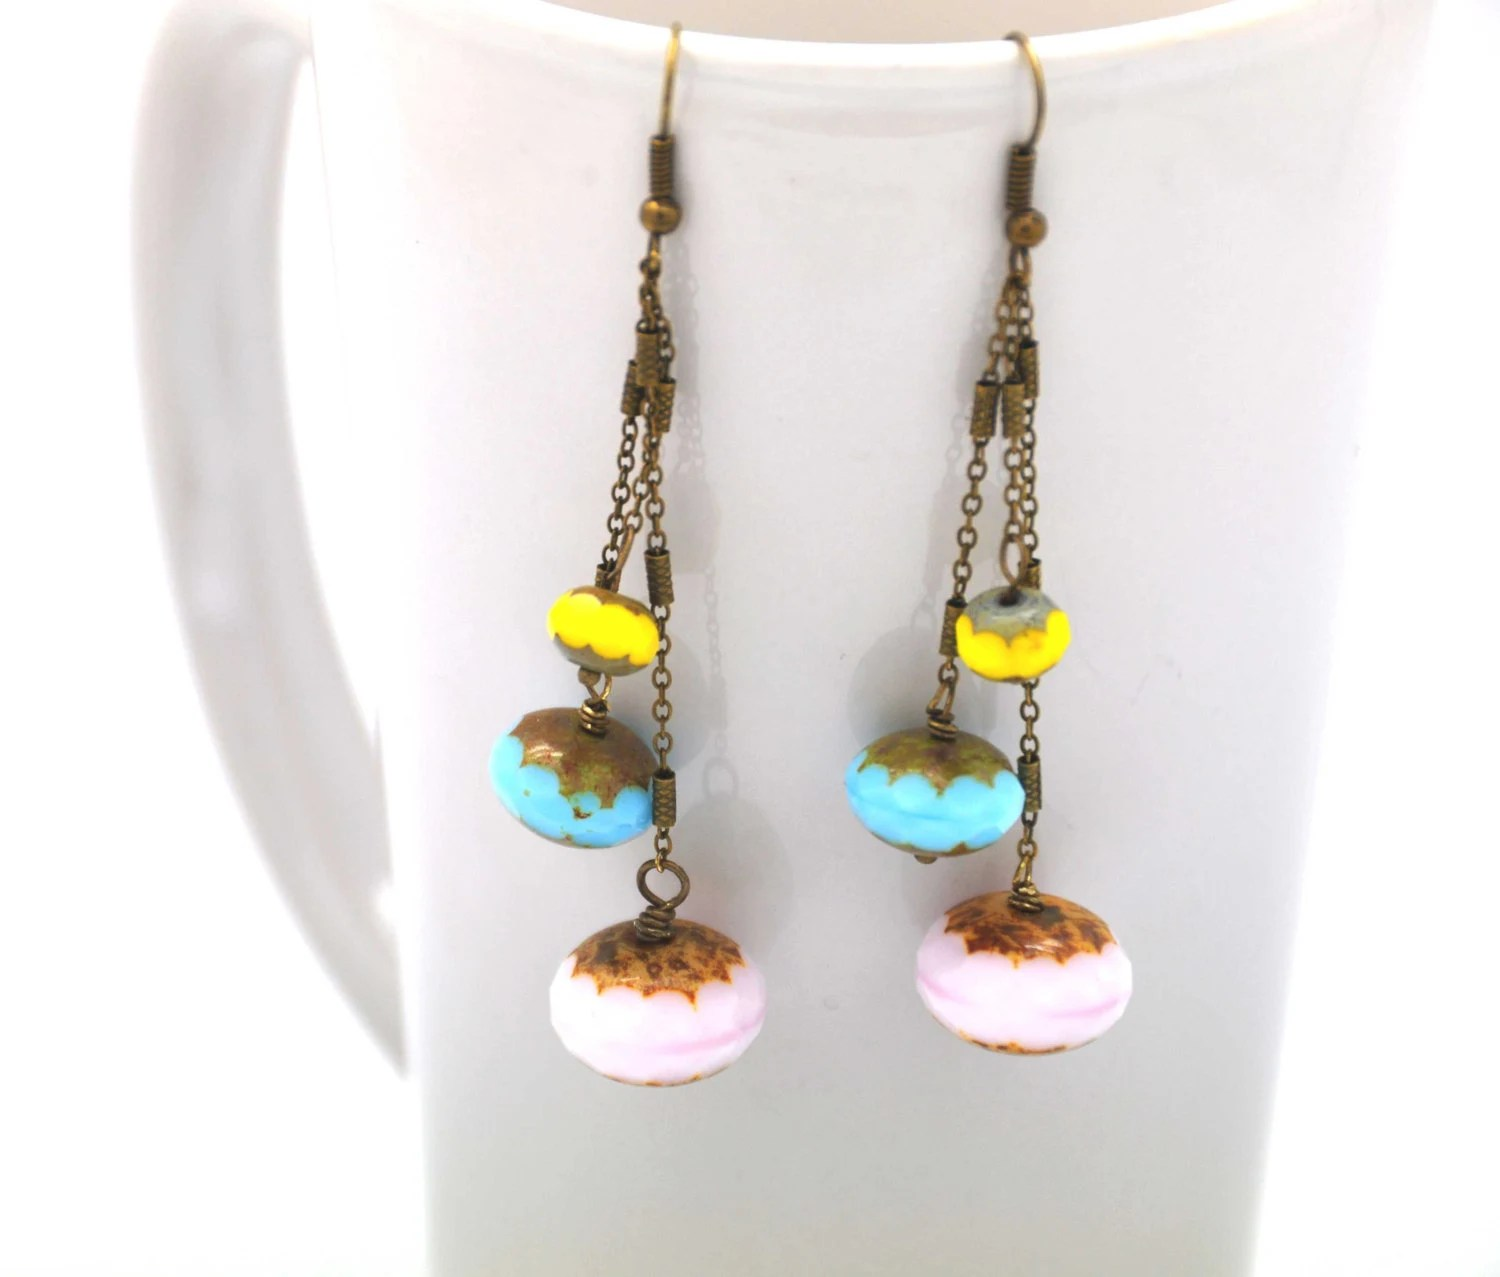 Sweet Spring Dangle earrings made with pink, blue, yellow rondelle faceted czech glasses and a delicate antique brass chain - BBTAR